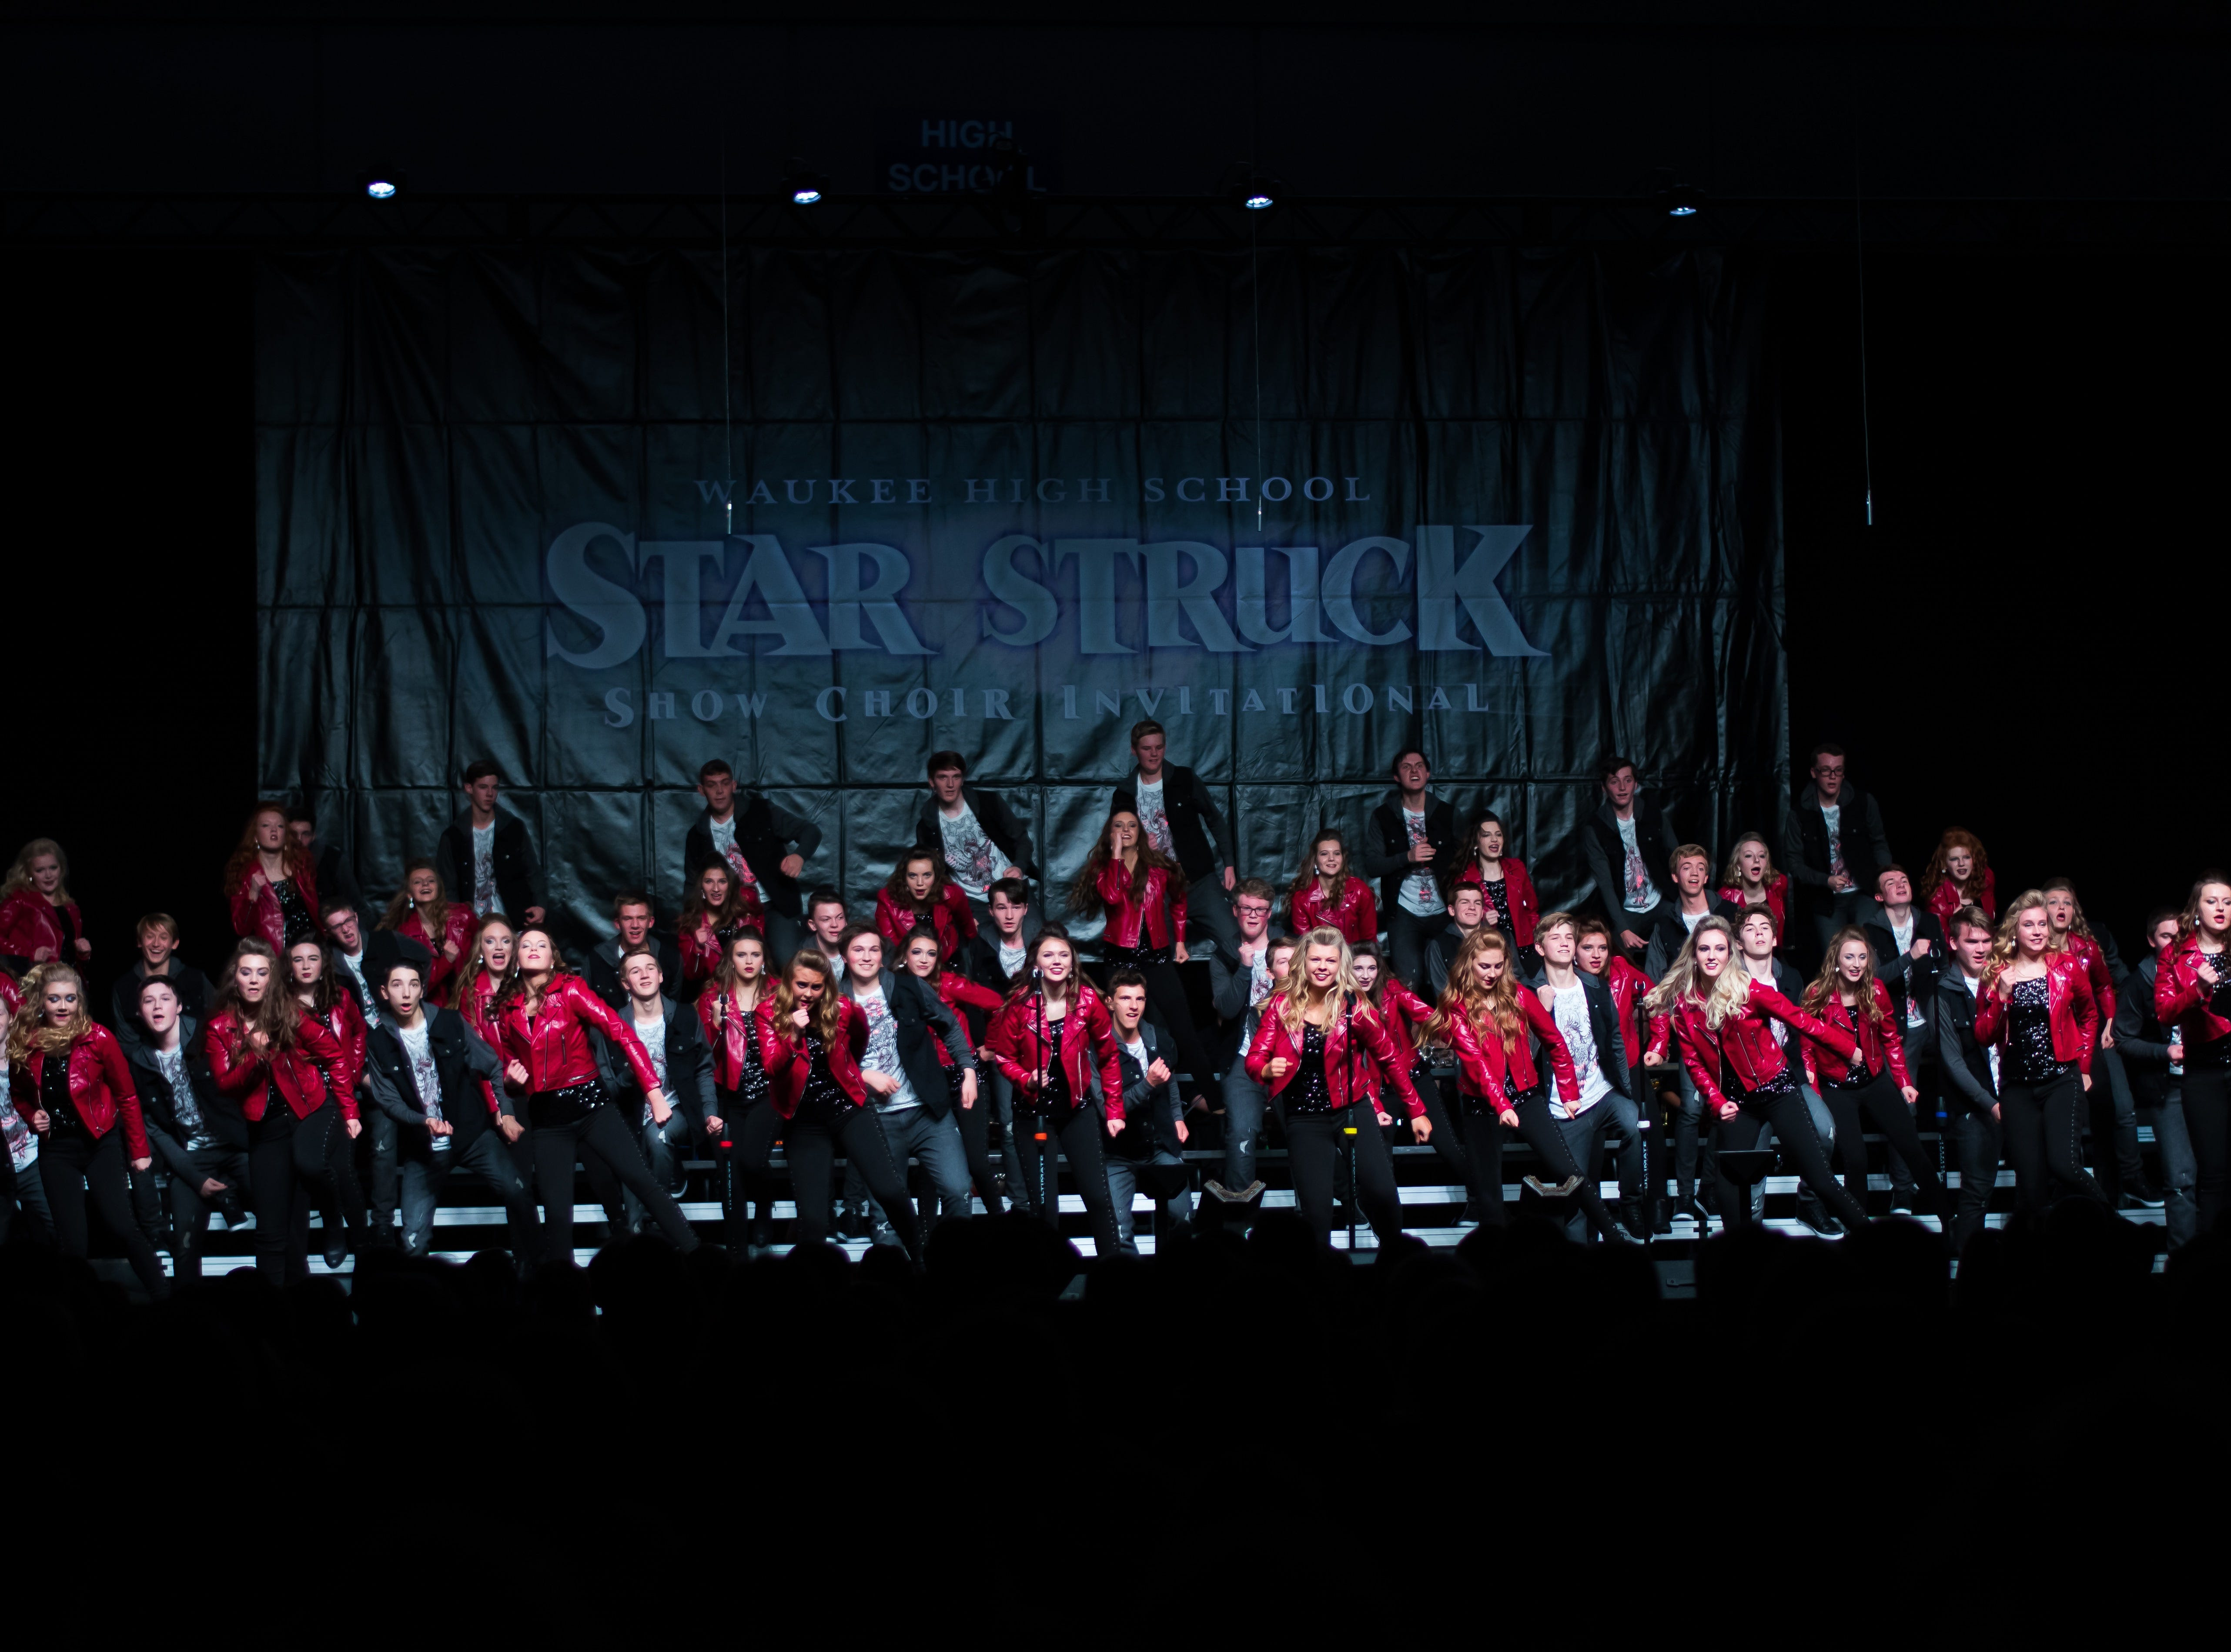 Johnston High show choir group Synergy performs on Saturday, Jan. 12, 2019 at the Waukee Star Struck Show Choir Invitational in the Waukee High School Field House.